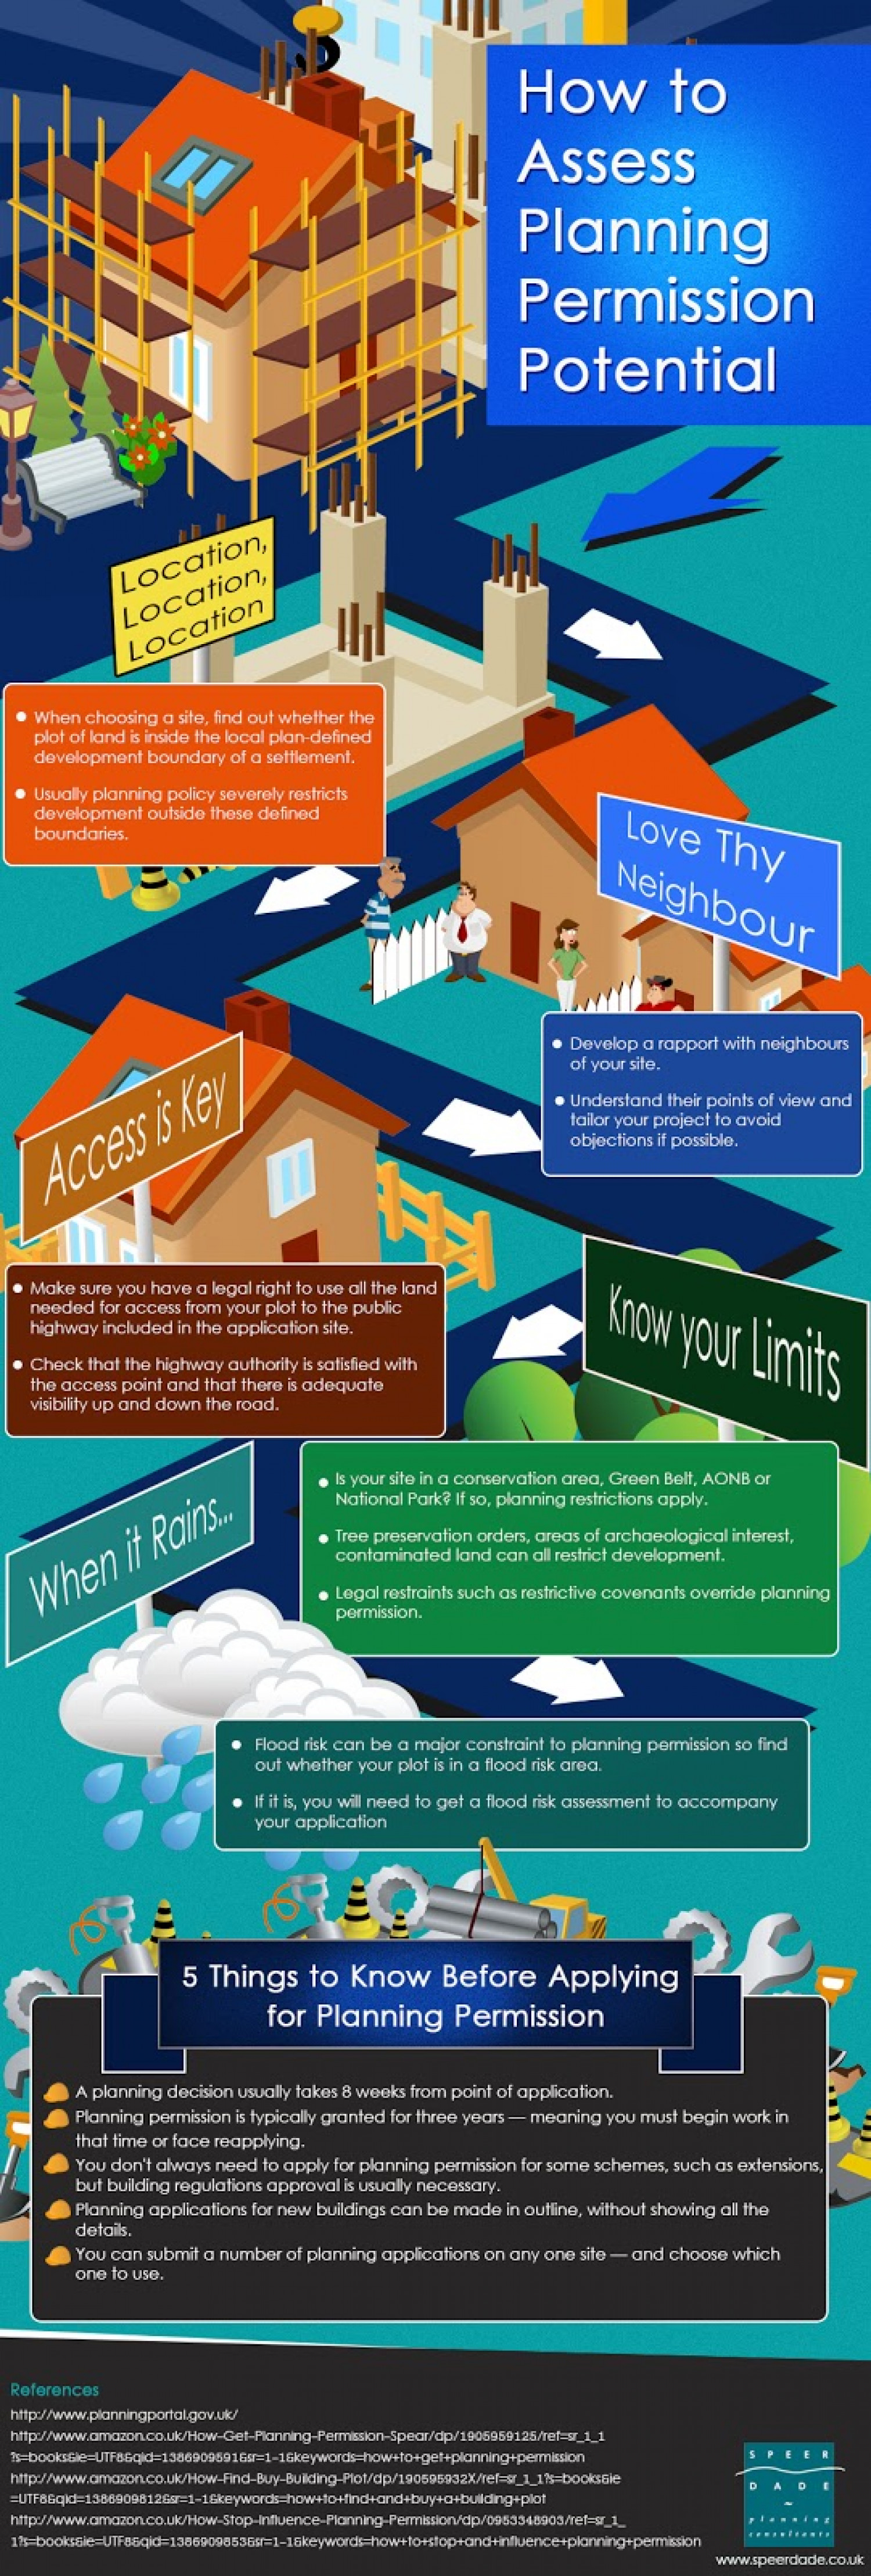 How to Assess Planning Permission Potential Infographic